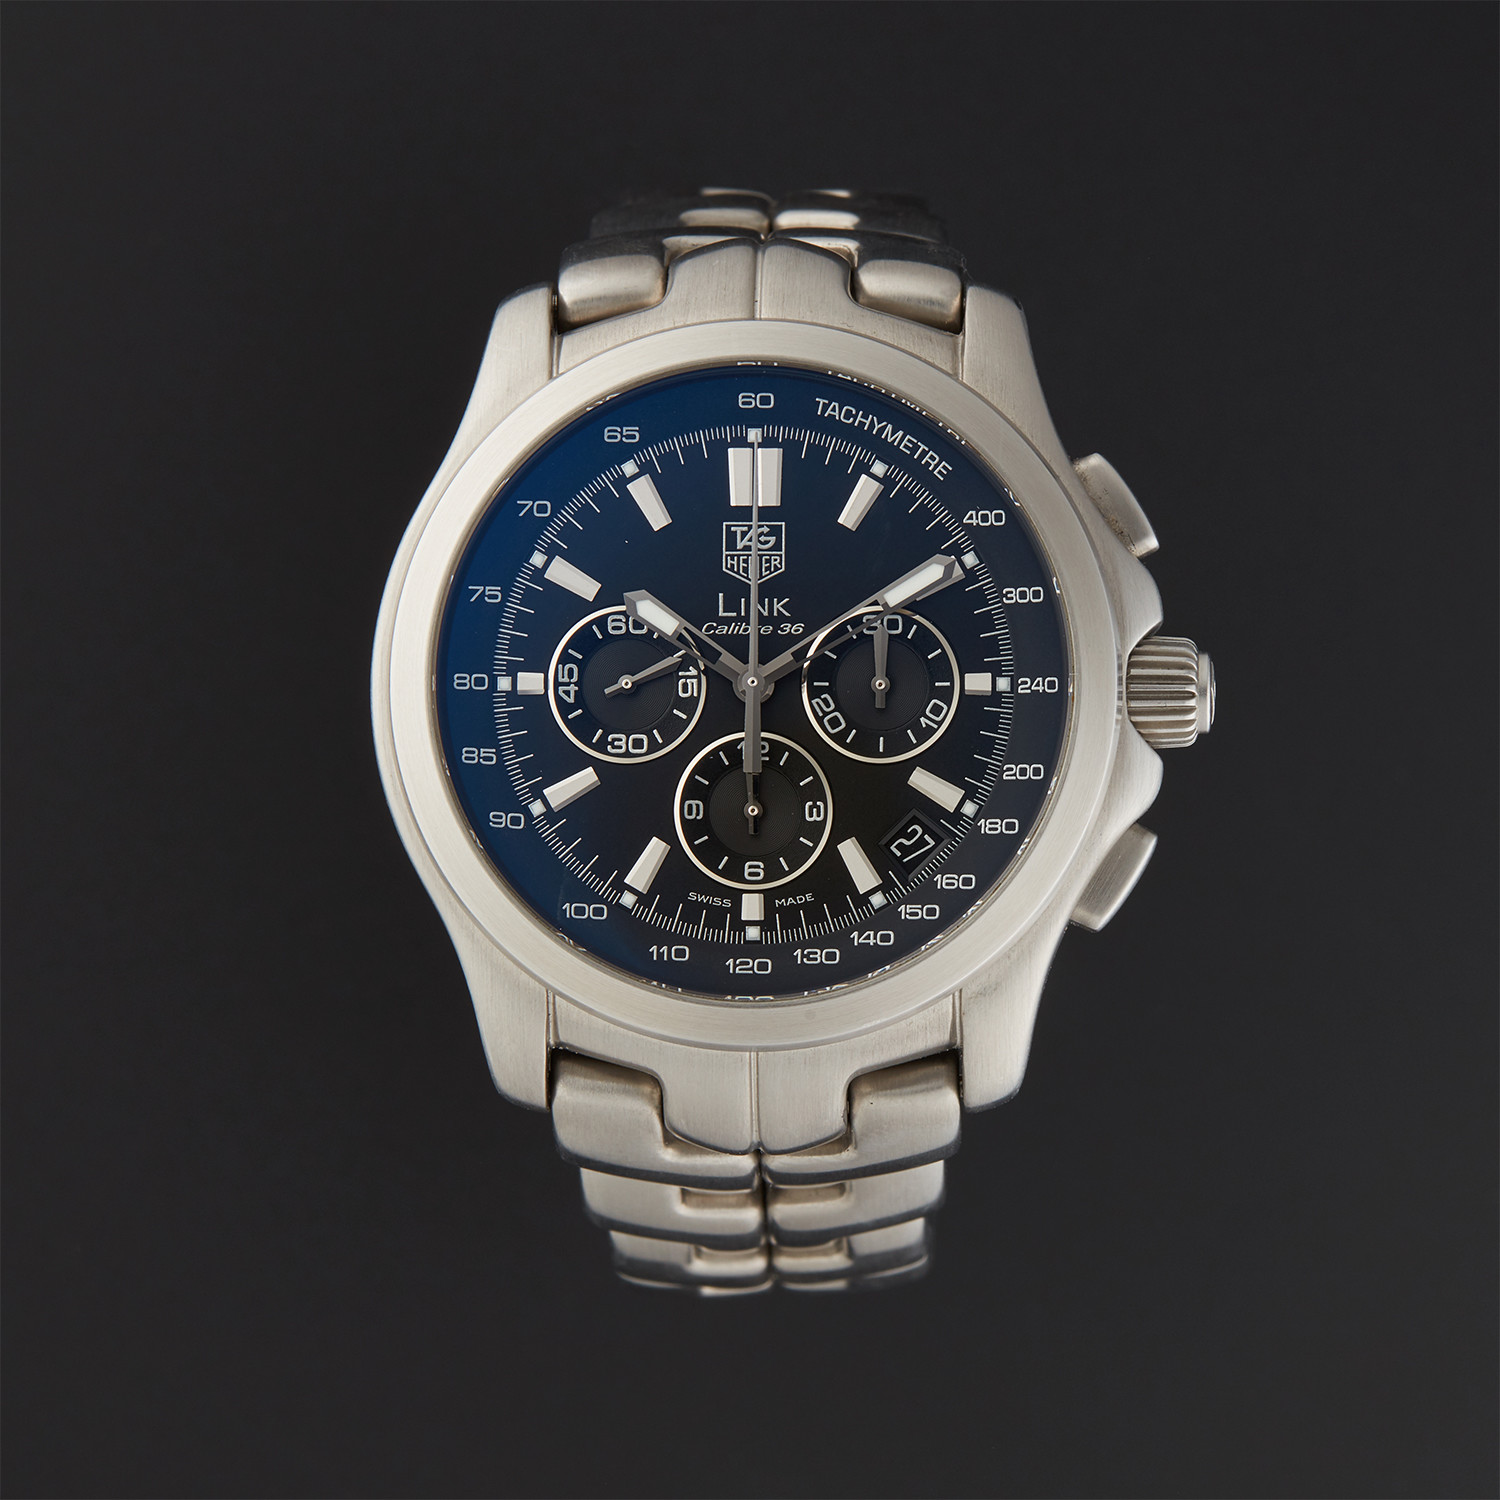 63df0280e1c Tag Heuer Link Calibre 36 Automatic // CT511A // Pre-Owned ...